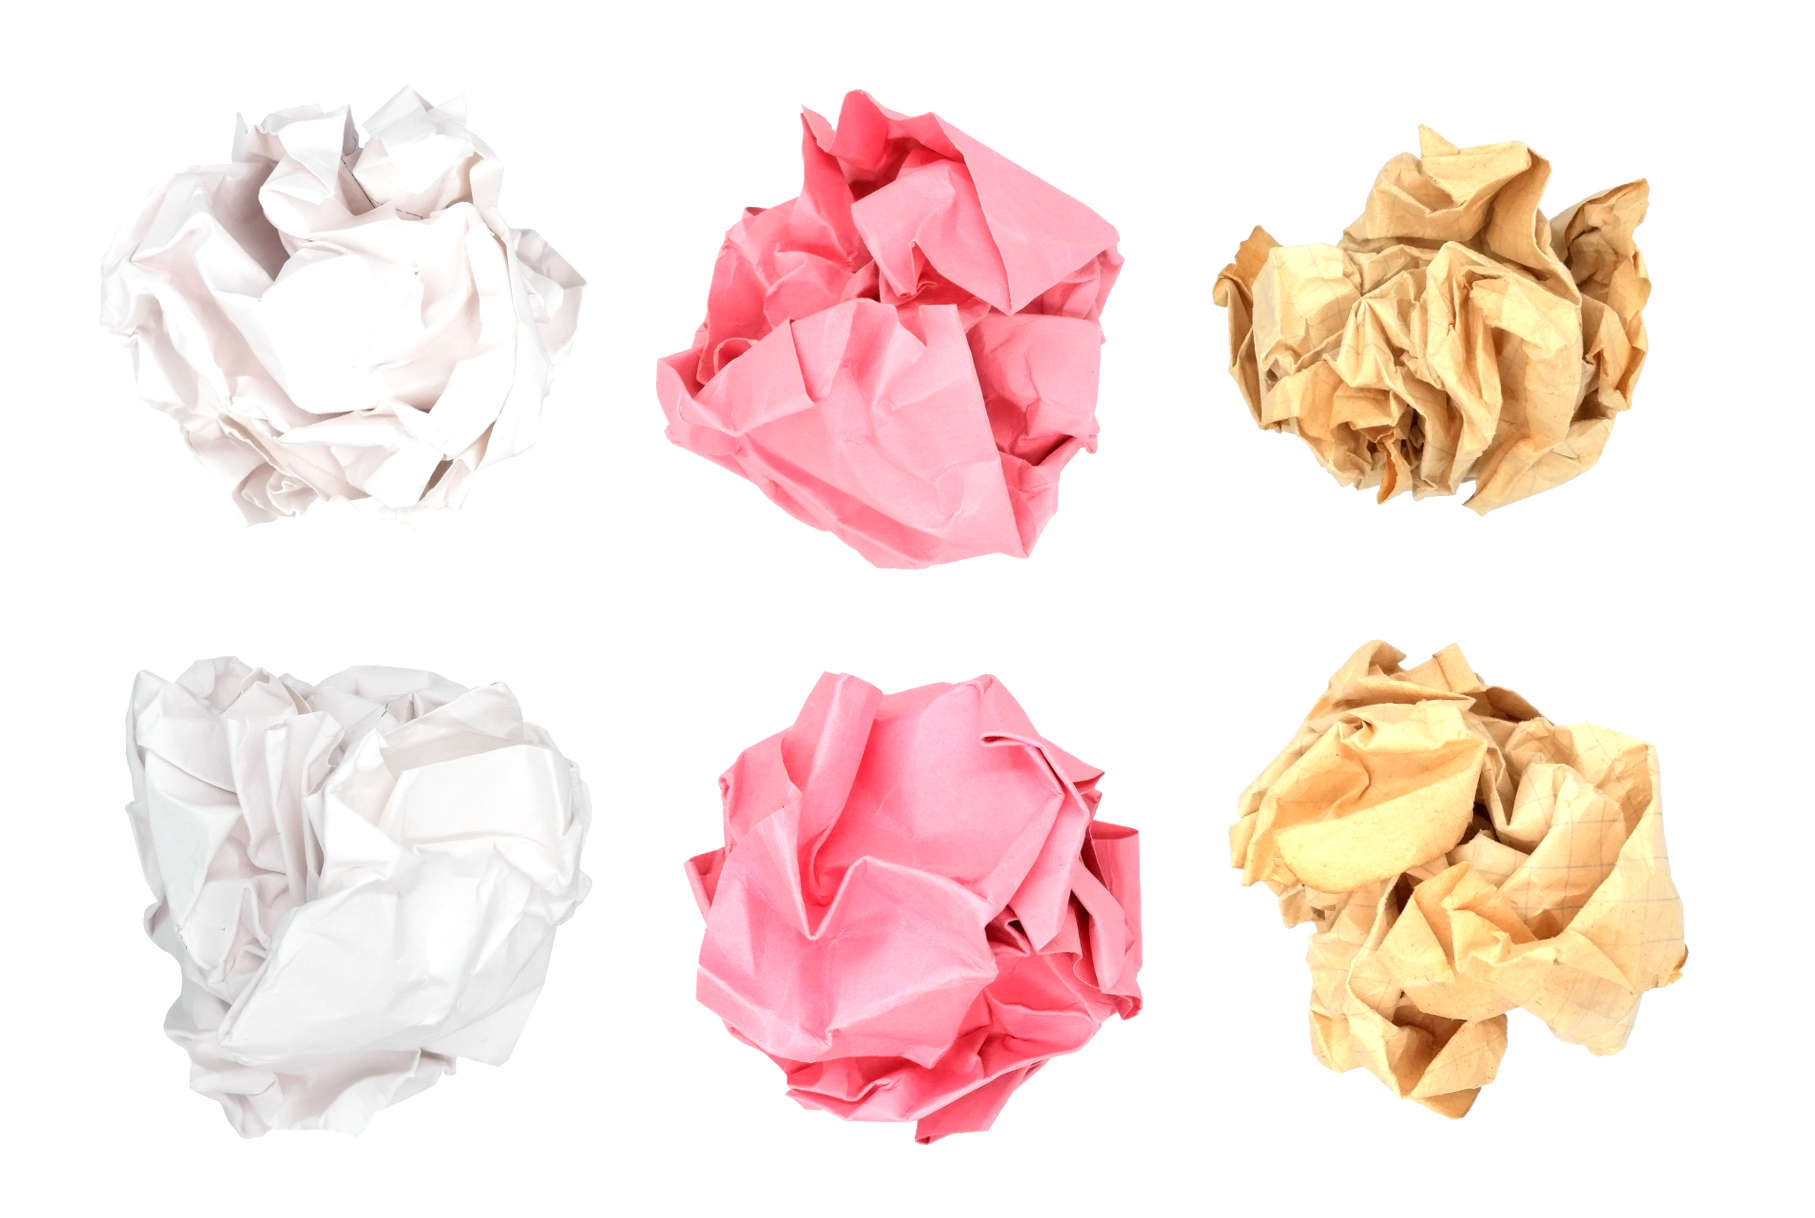 crumpled-up-ball-paper-cover.jpg